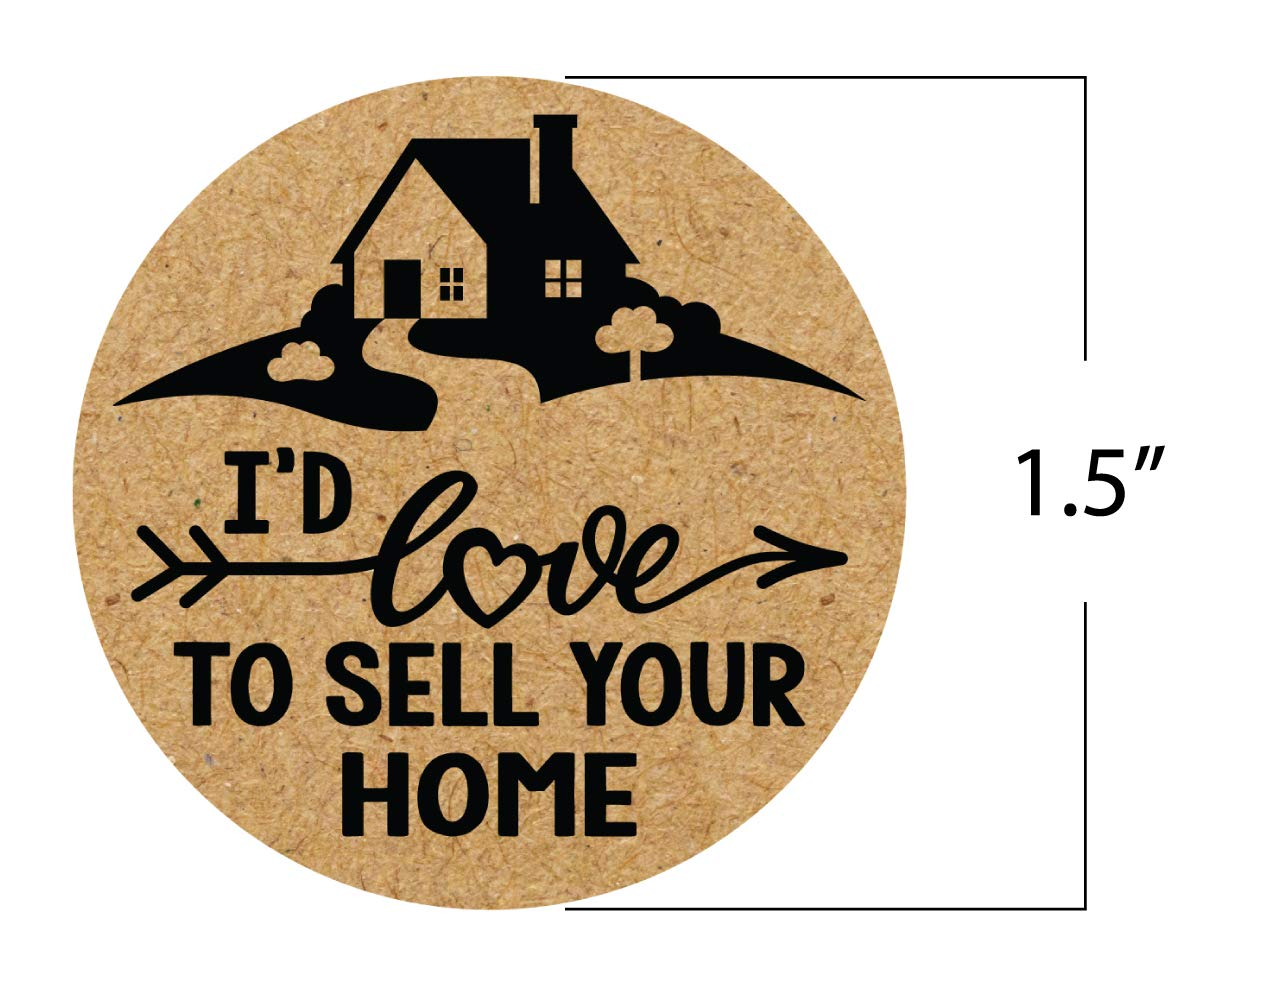 Round 1.5 Kraft Paper Stickers Roll of 500, Id Love to Sell Your Home